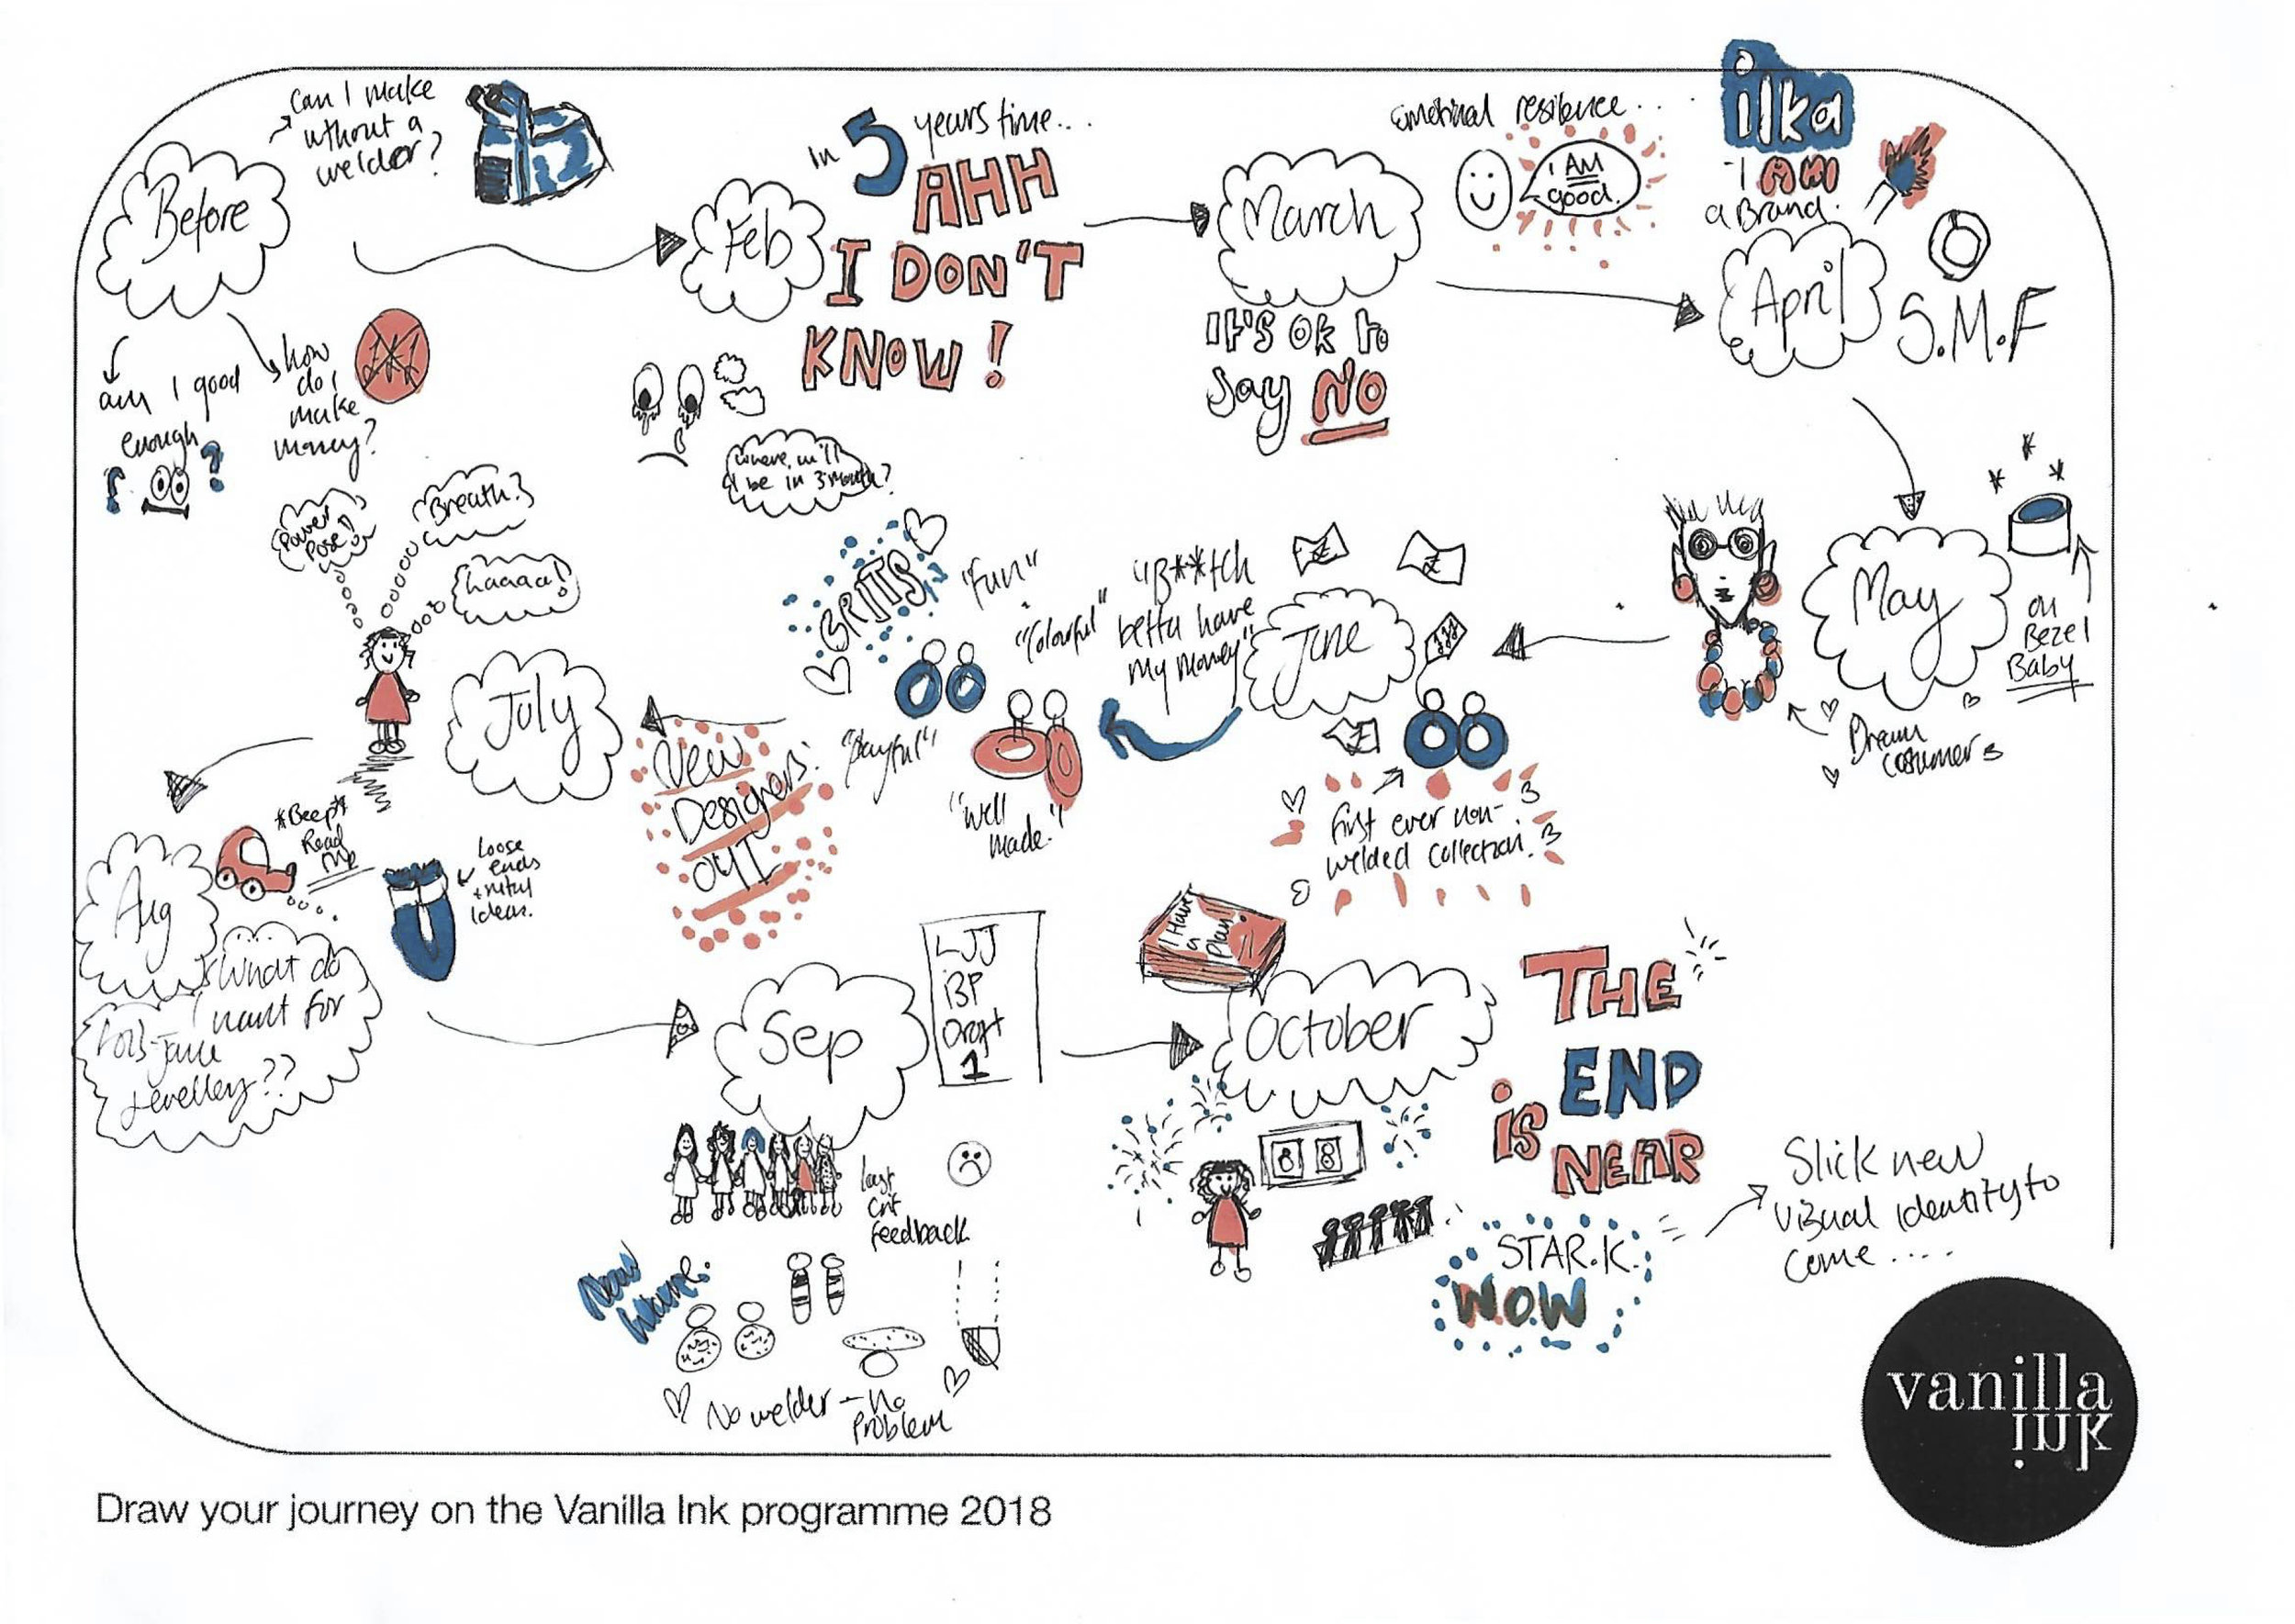 Inker Lois drew her journey on the Vanilla INKubator Programme, it beautifully highlights what her 9 months looked like. Lois won the 'Visual Identity' award during her pitch. She will work with    STARK    to develop her brand and visual communication thanks to Vanilla Ink.